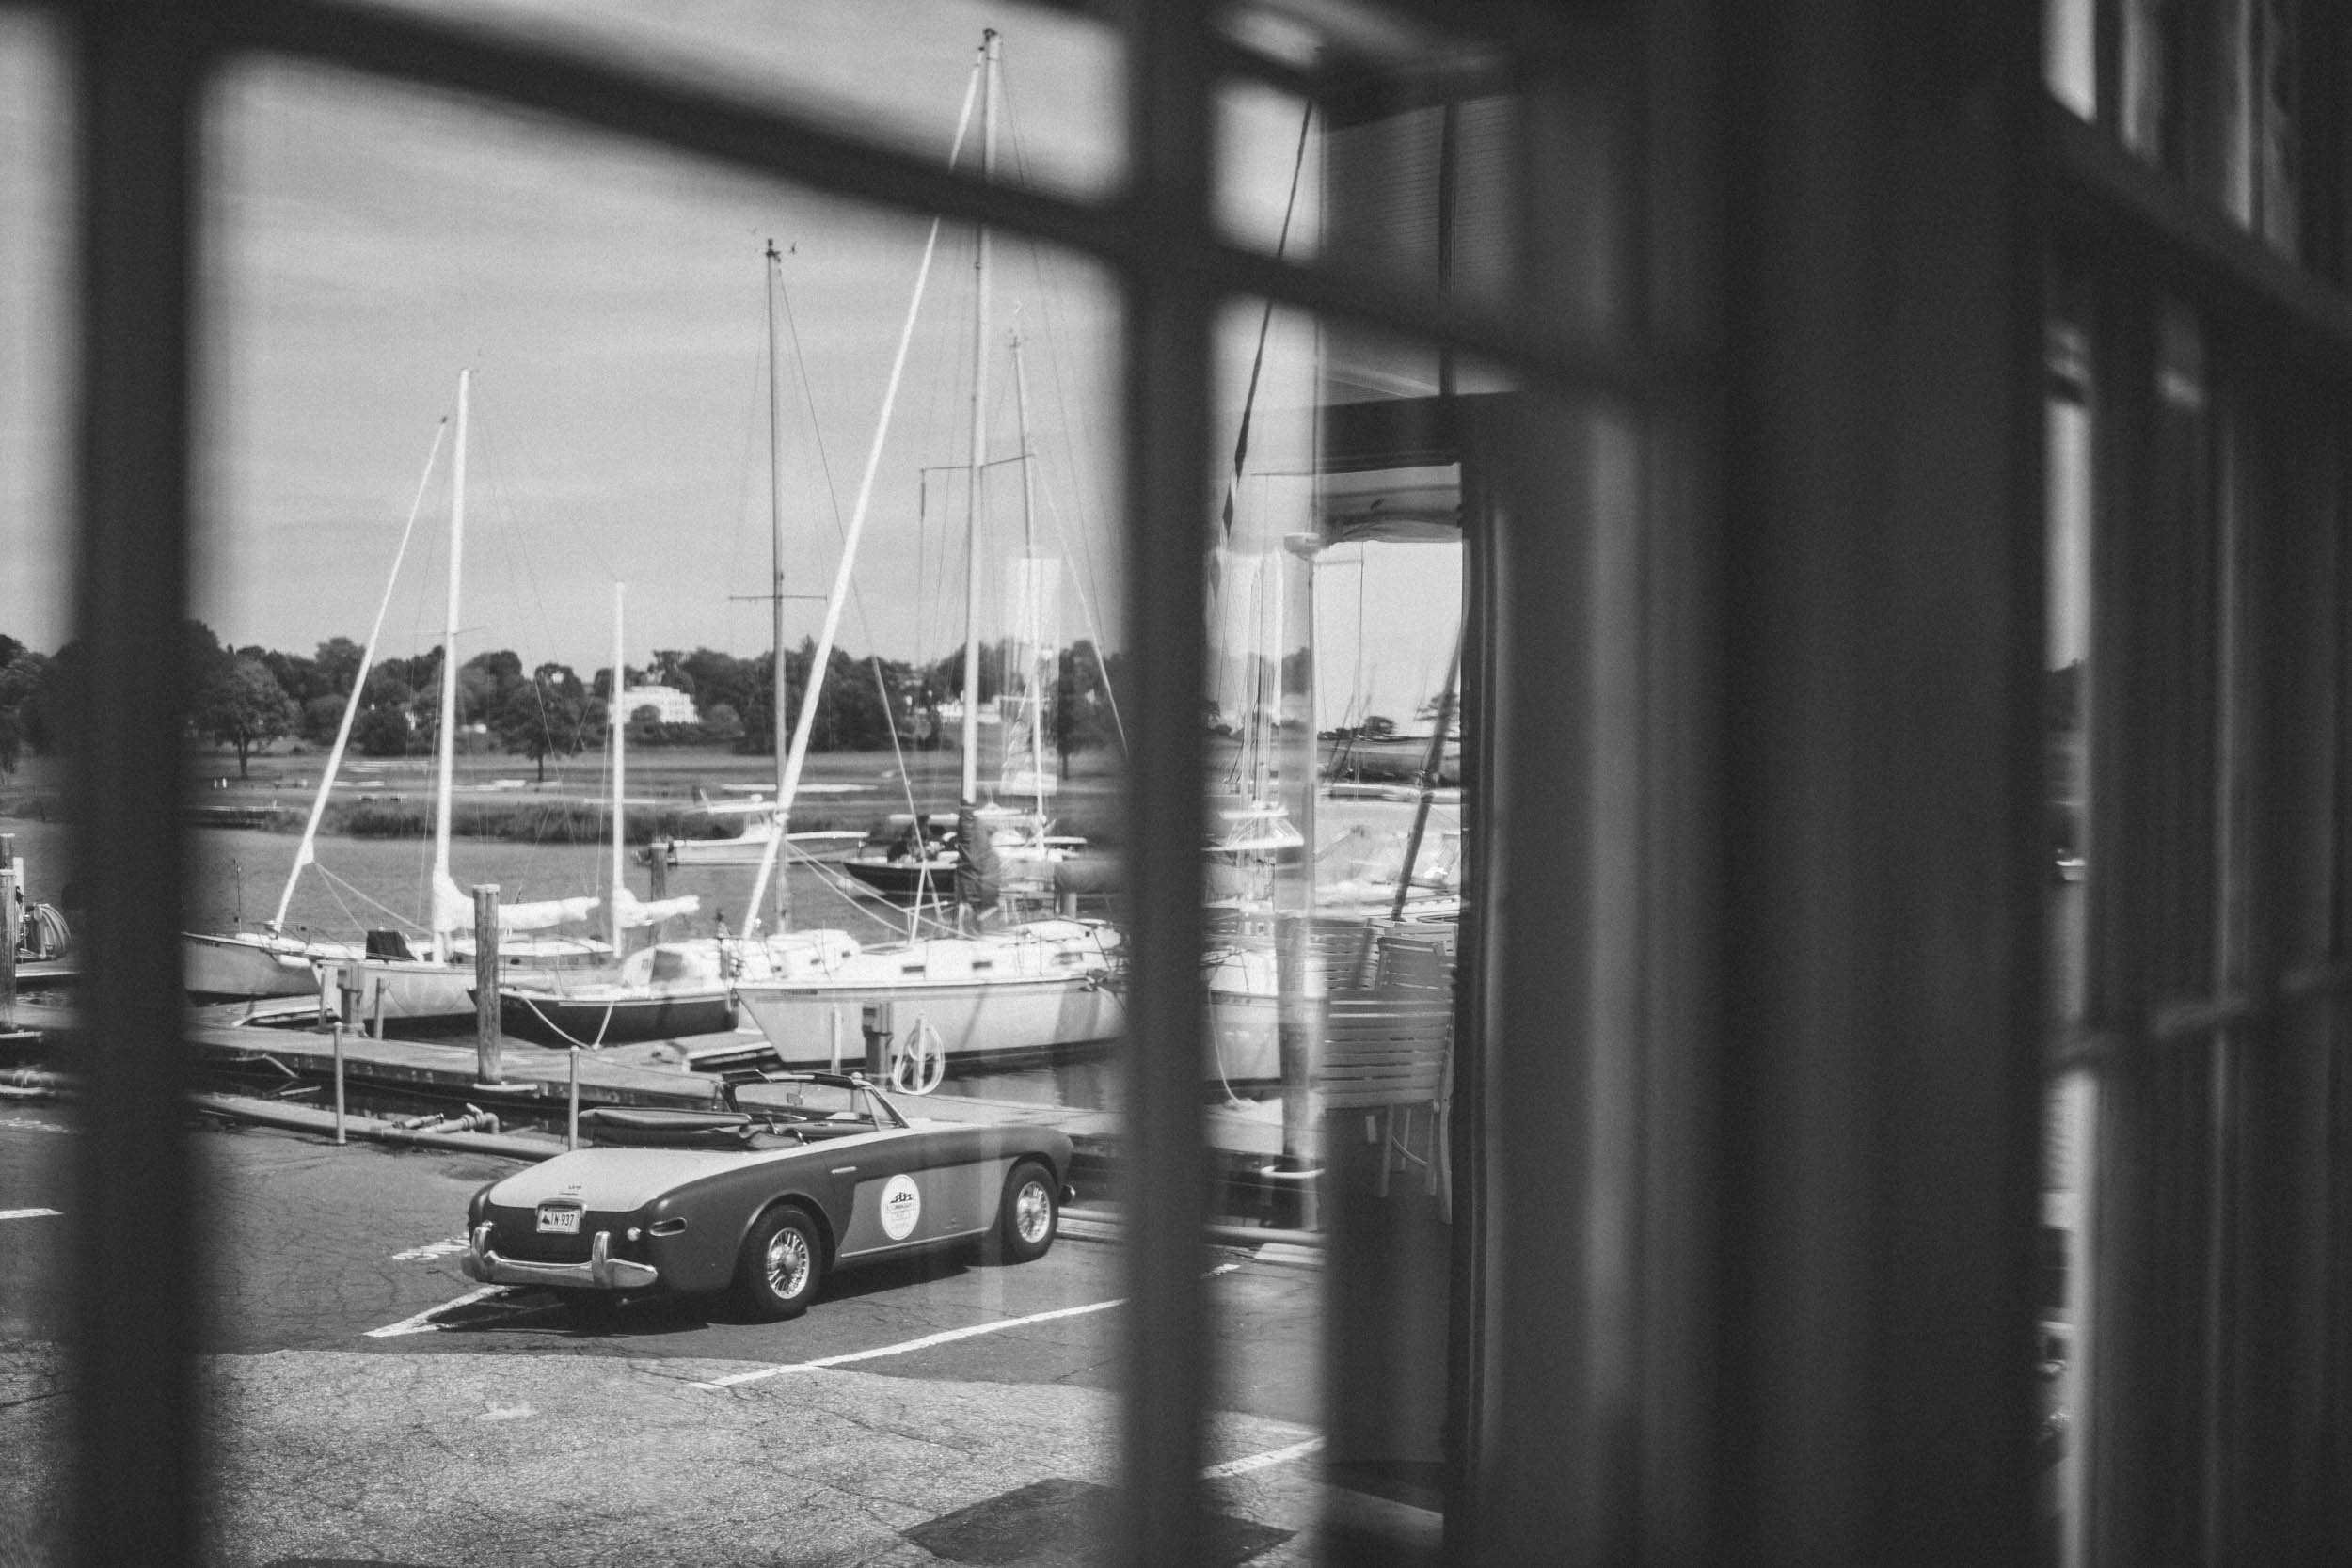 Our borrowed ragtop takes in the view at the Pequot Yacht Club, from which Briggs defended the '58 America's Cup.